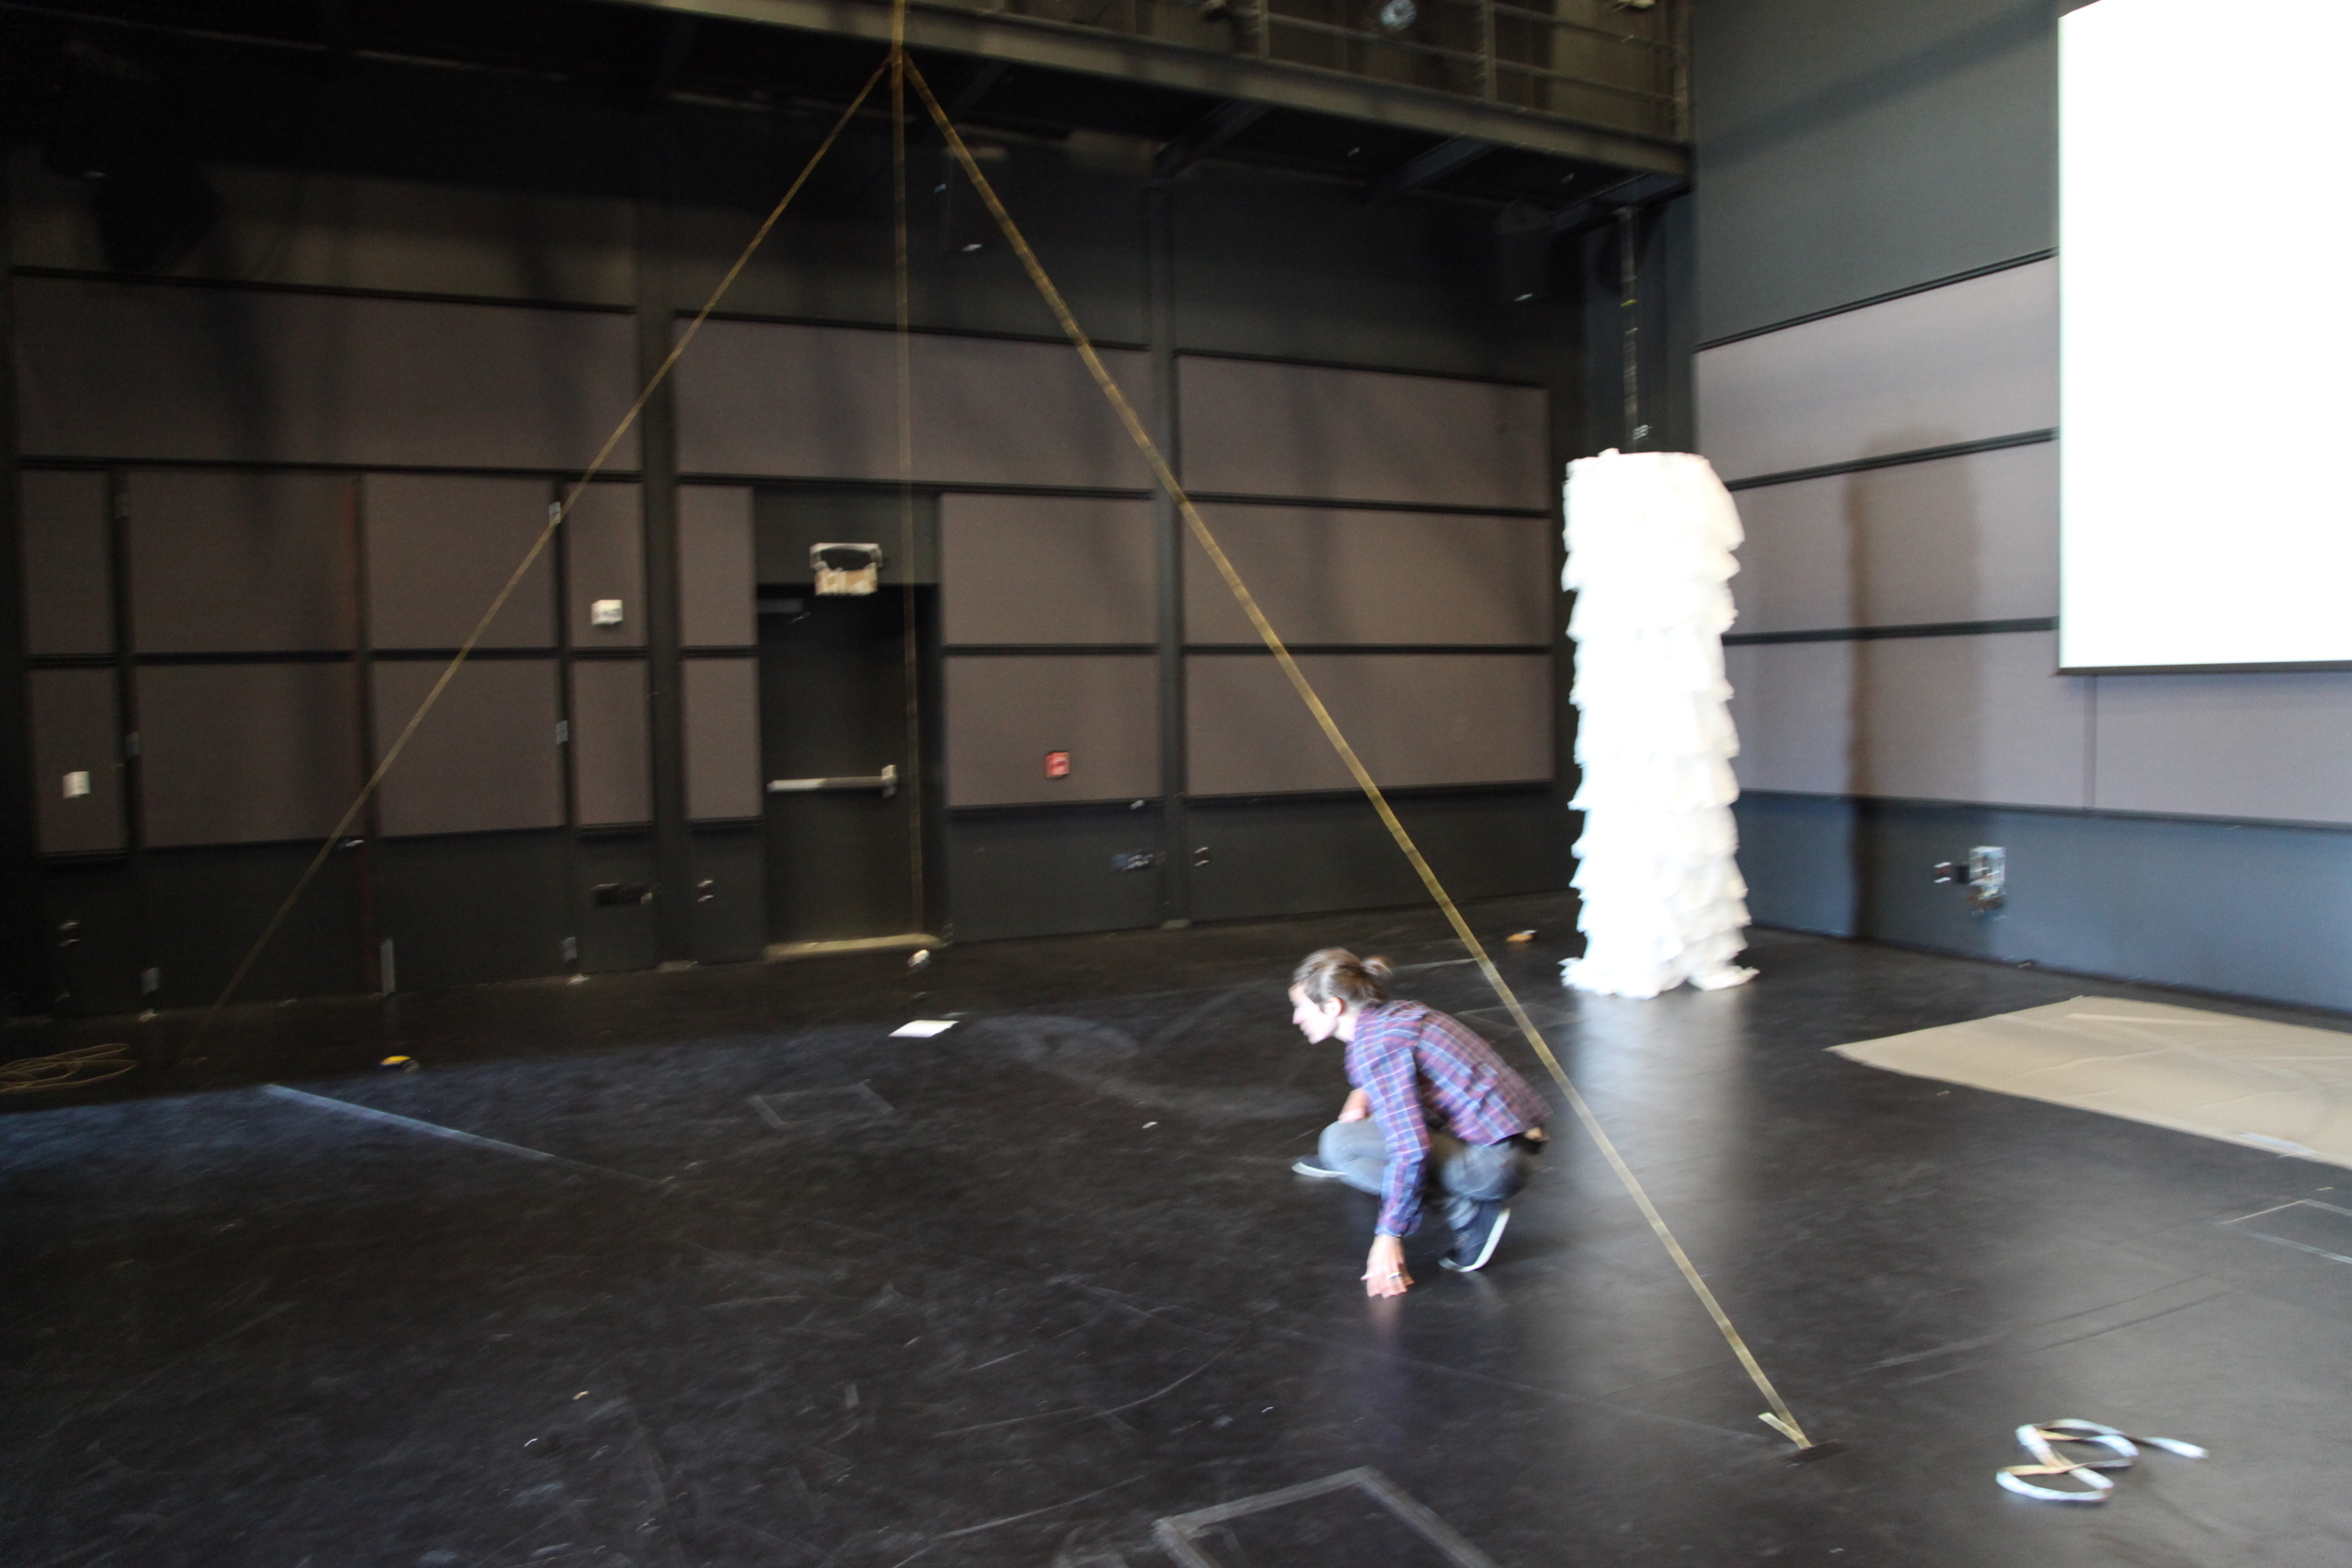 Mapping dimensions for a giant performance pyramid for  Denizen, UCSC black box, 2012.